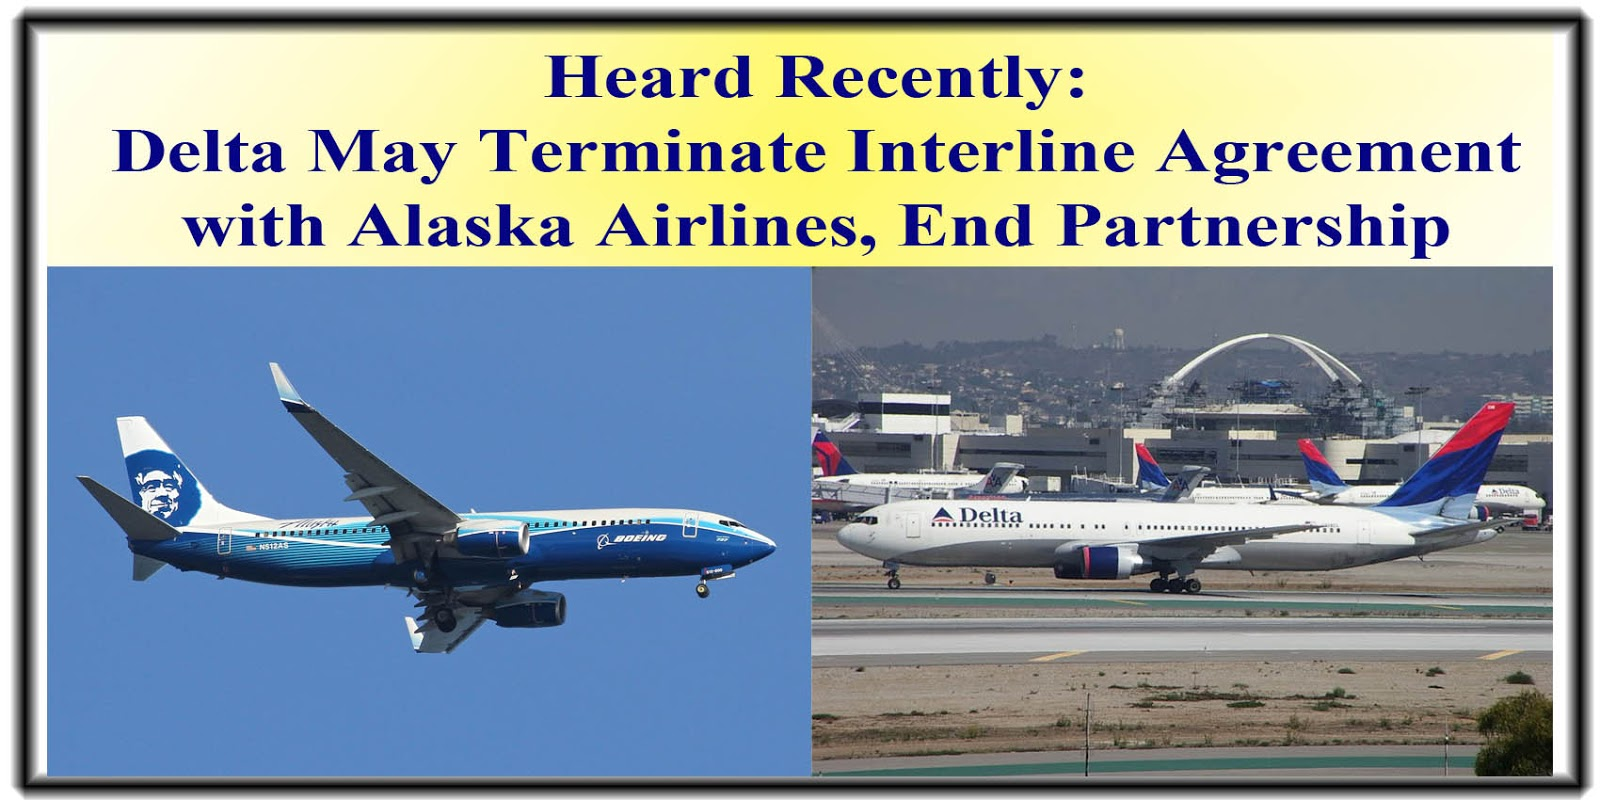 Delta Air Lines May Terminate Interline Agreement With Alaska Airlines And End Partnership